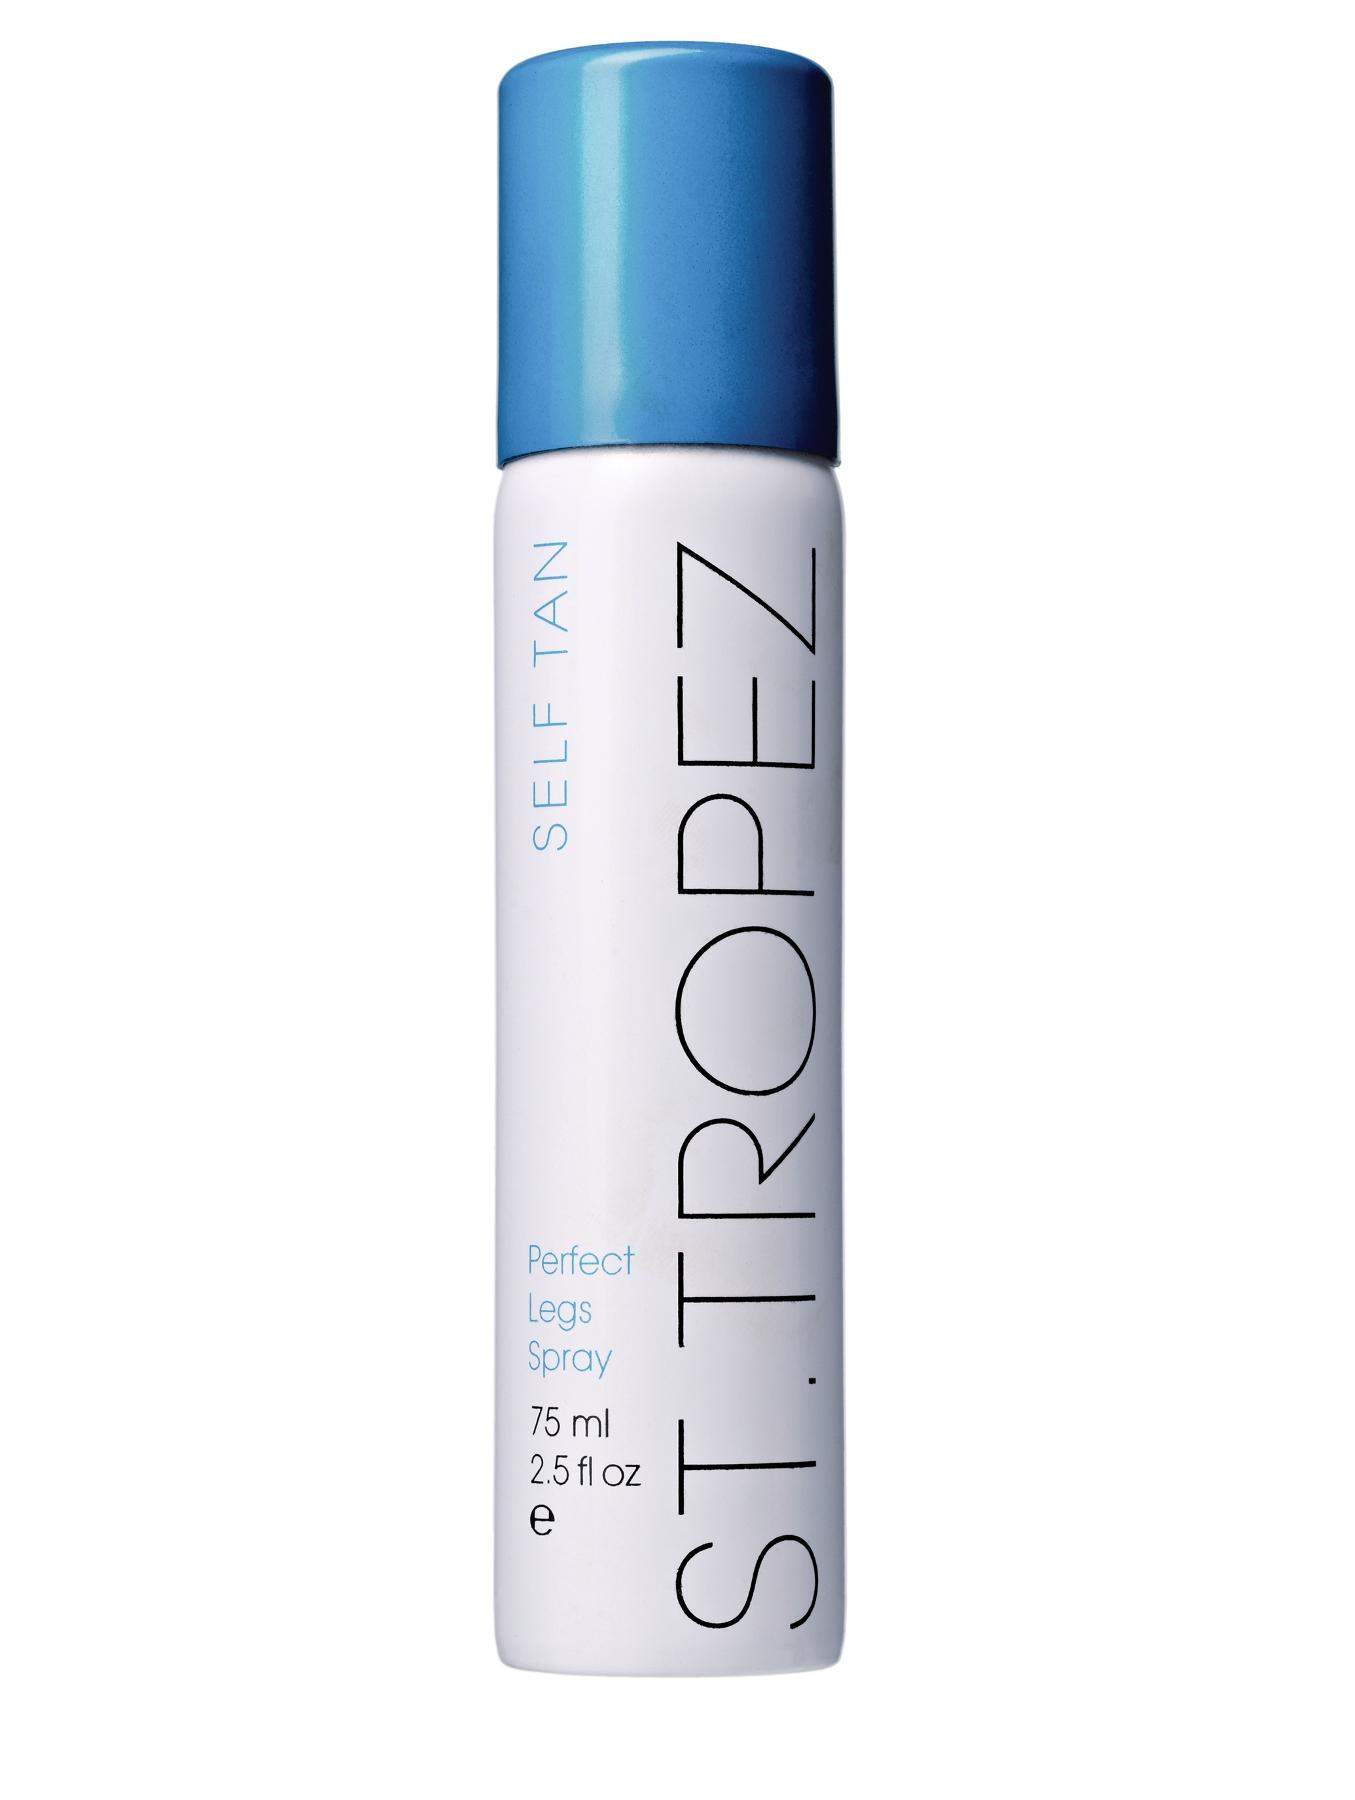 St Tropez Self Tan Perfect Leg Spray 75ml